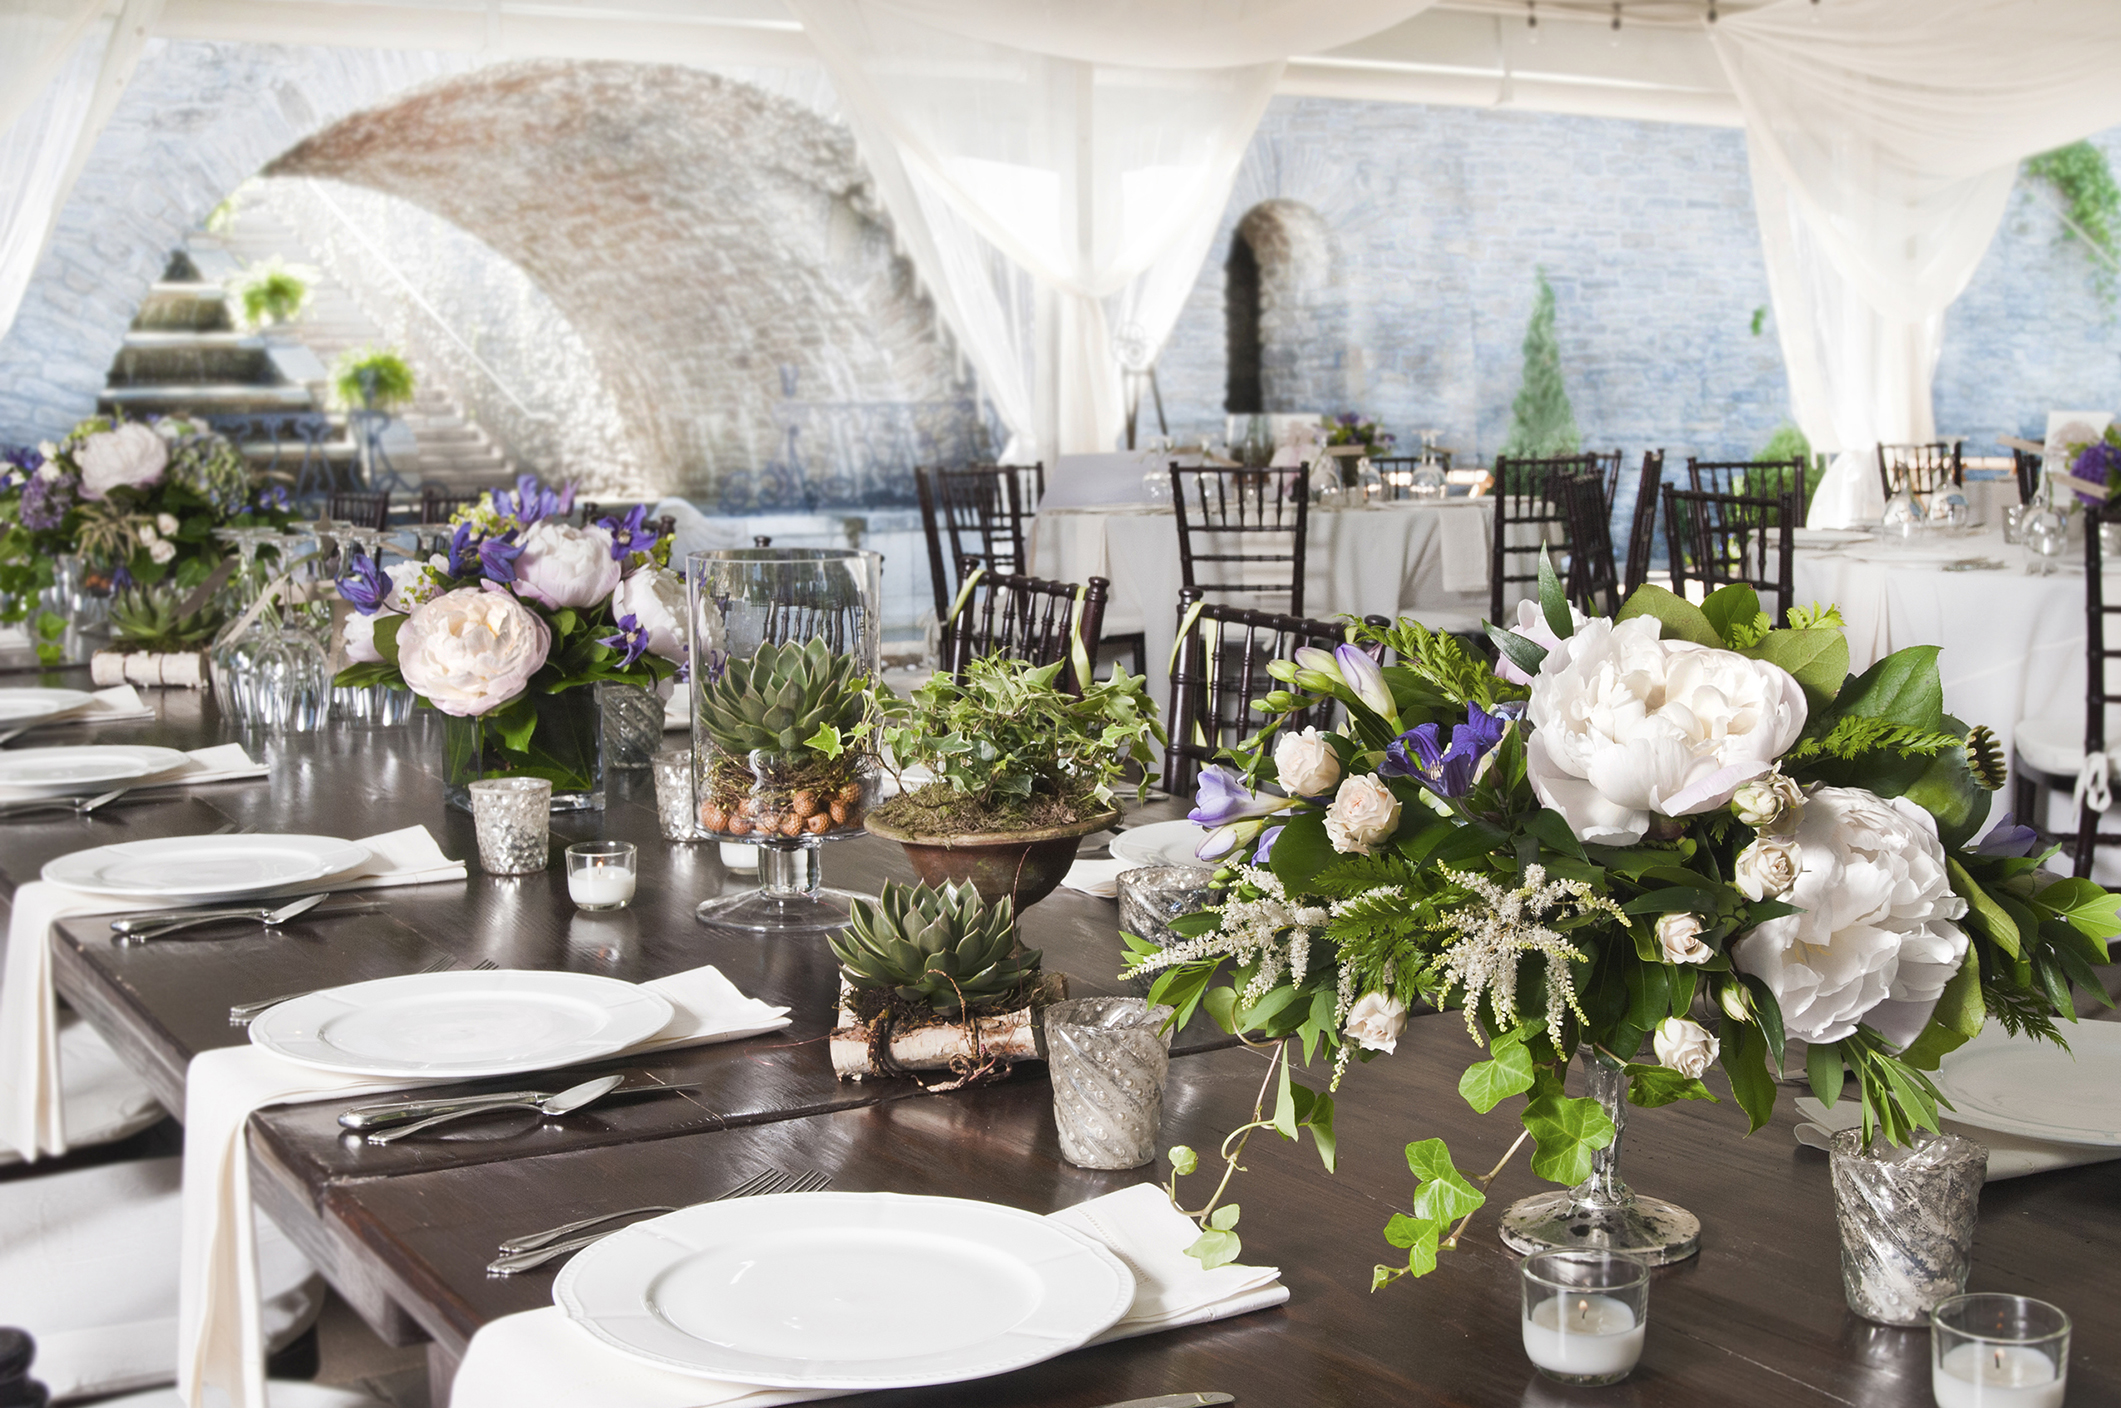 Wedding reception tables with natural peony centerpieces in an outdoor setting